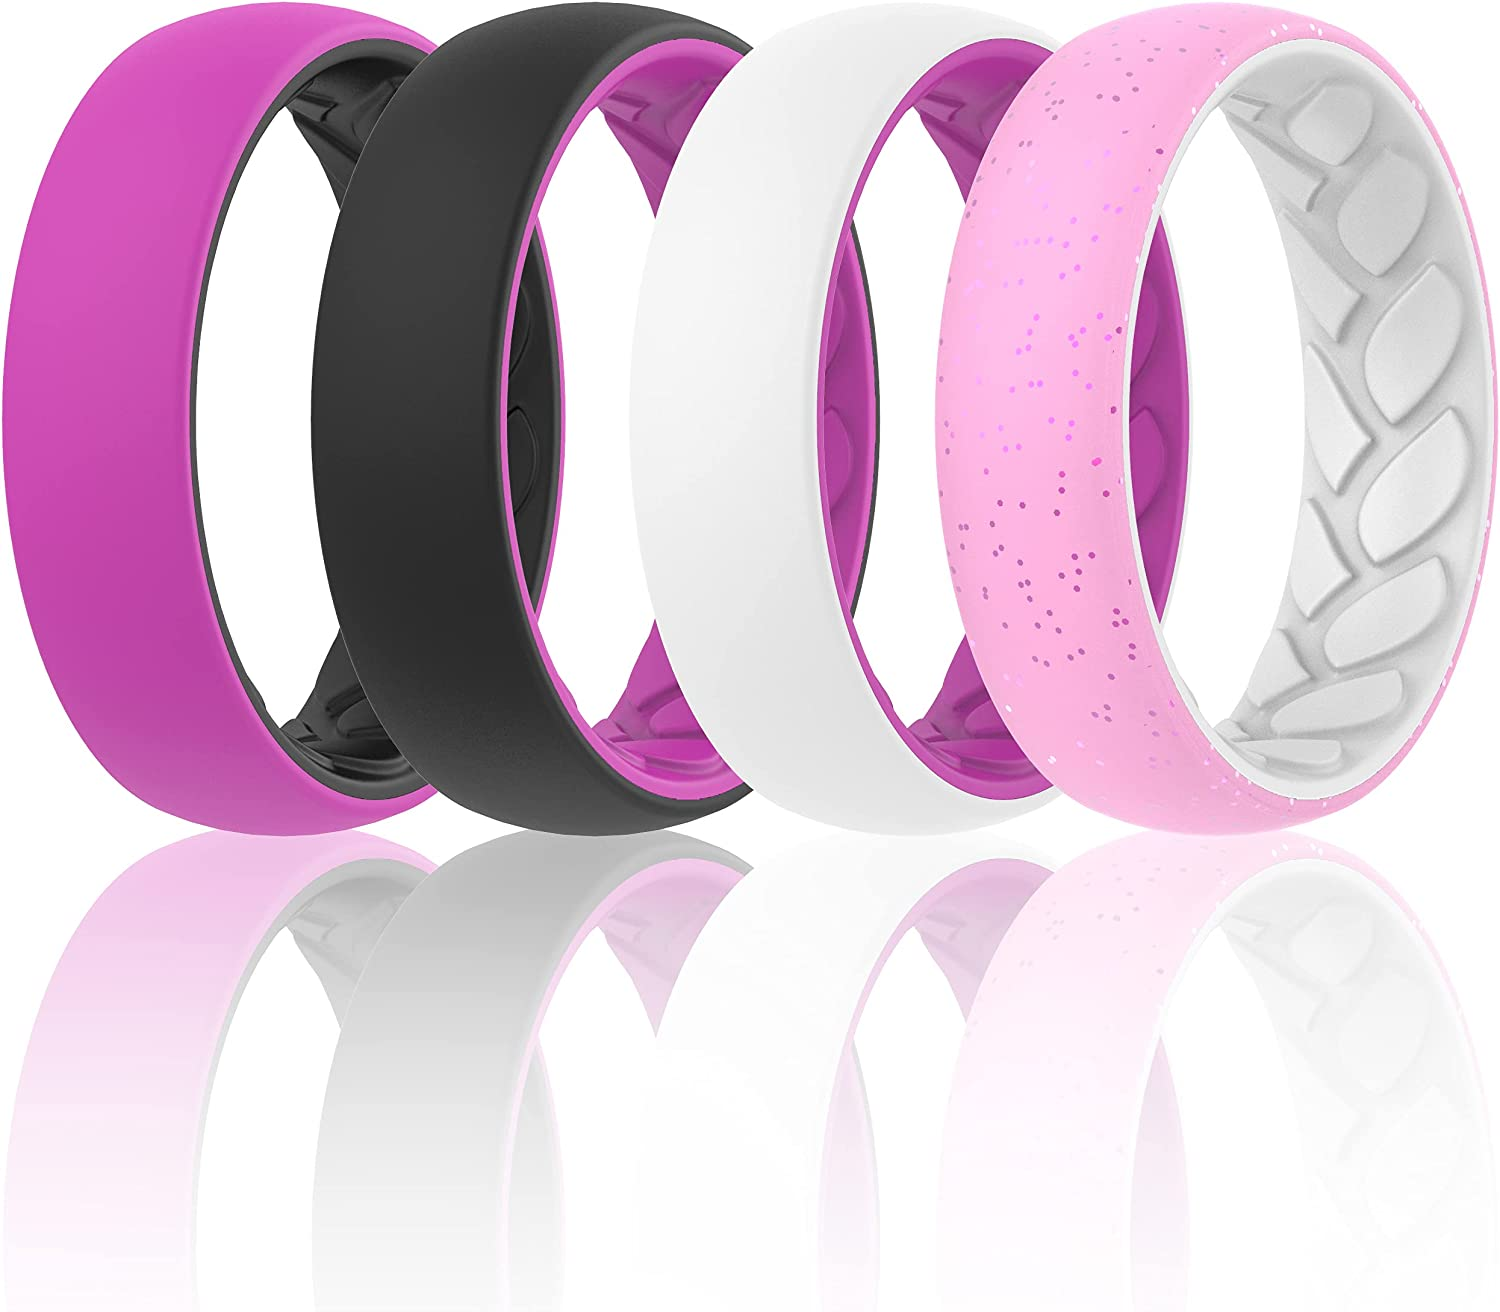 ThunderFit Silicone Wedding Bands for Women, 2 Layer - 5.5mm Width - 2mm Thick